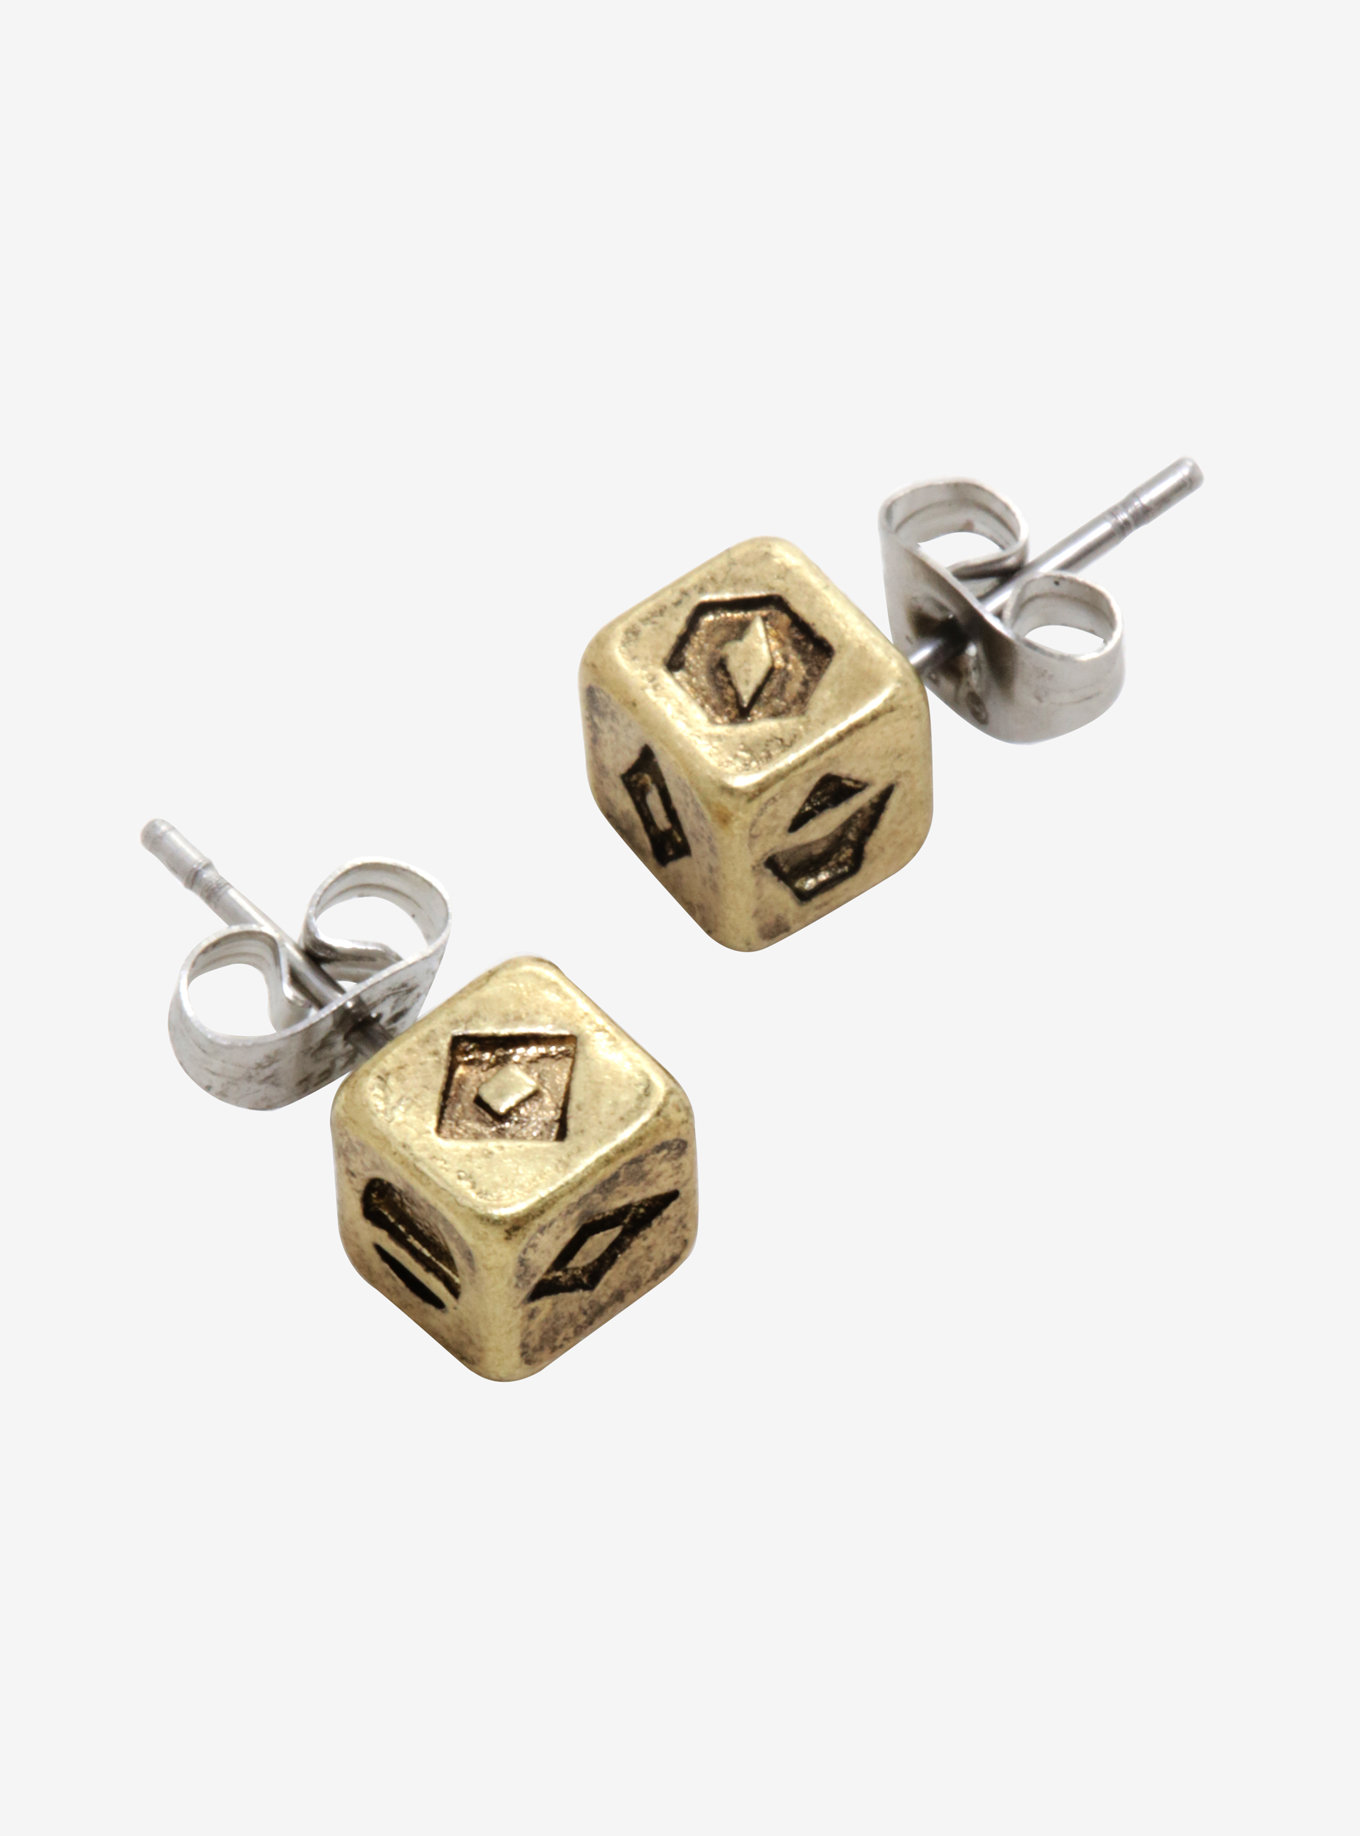 Star Wars Solo A Star Wars Story Dice Stud Earrings available exclusively at Box Lunch